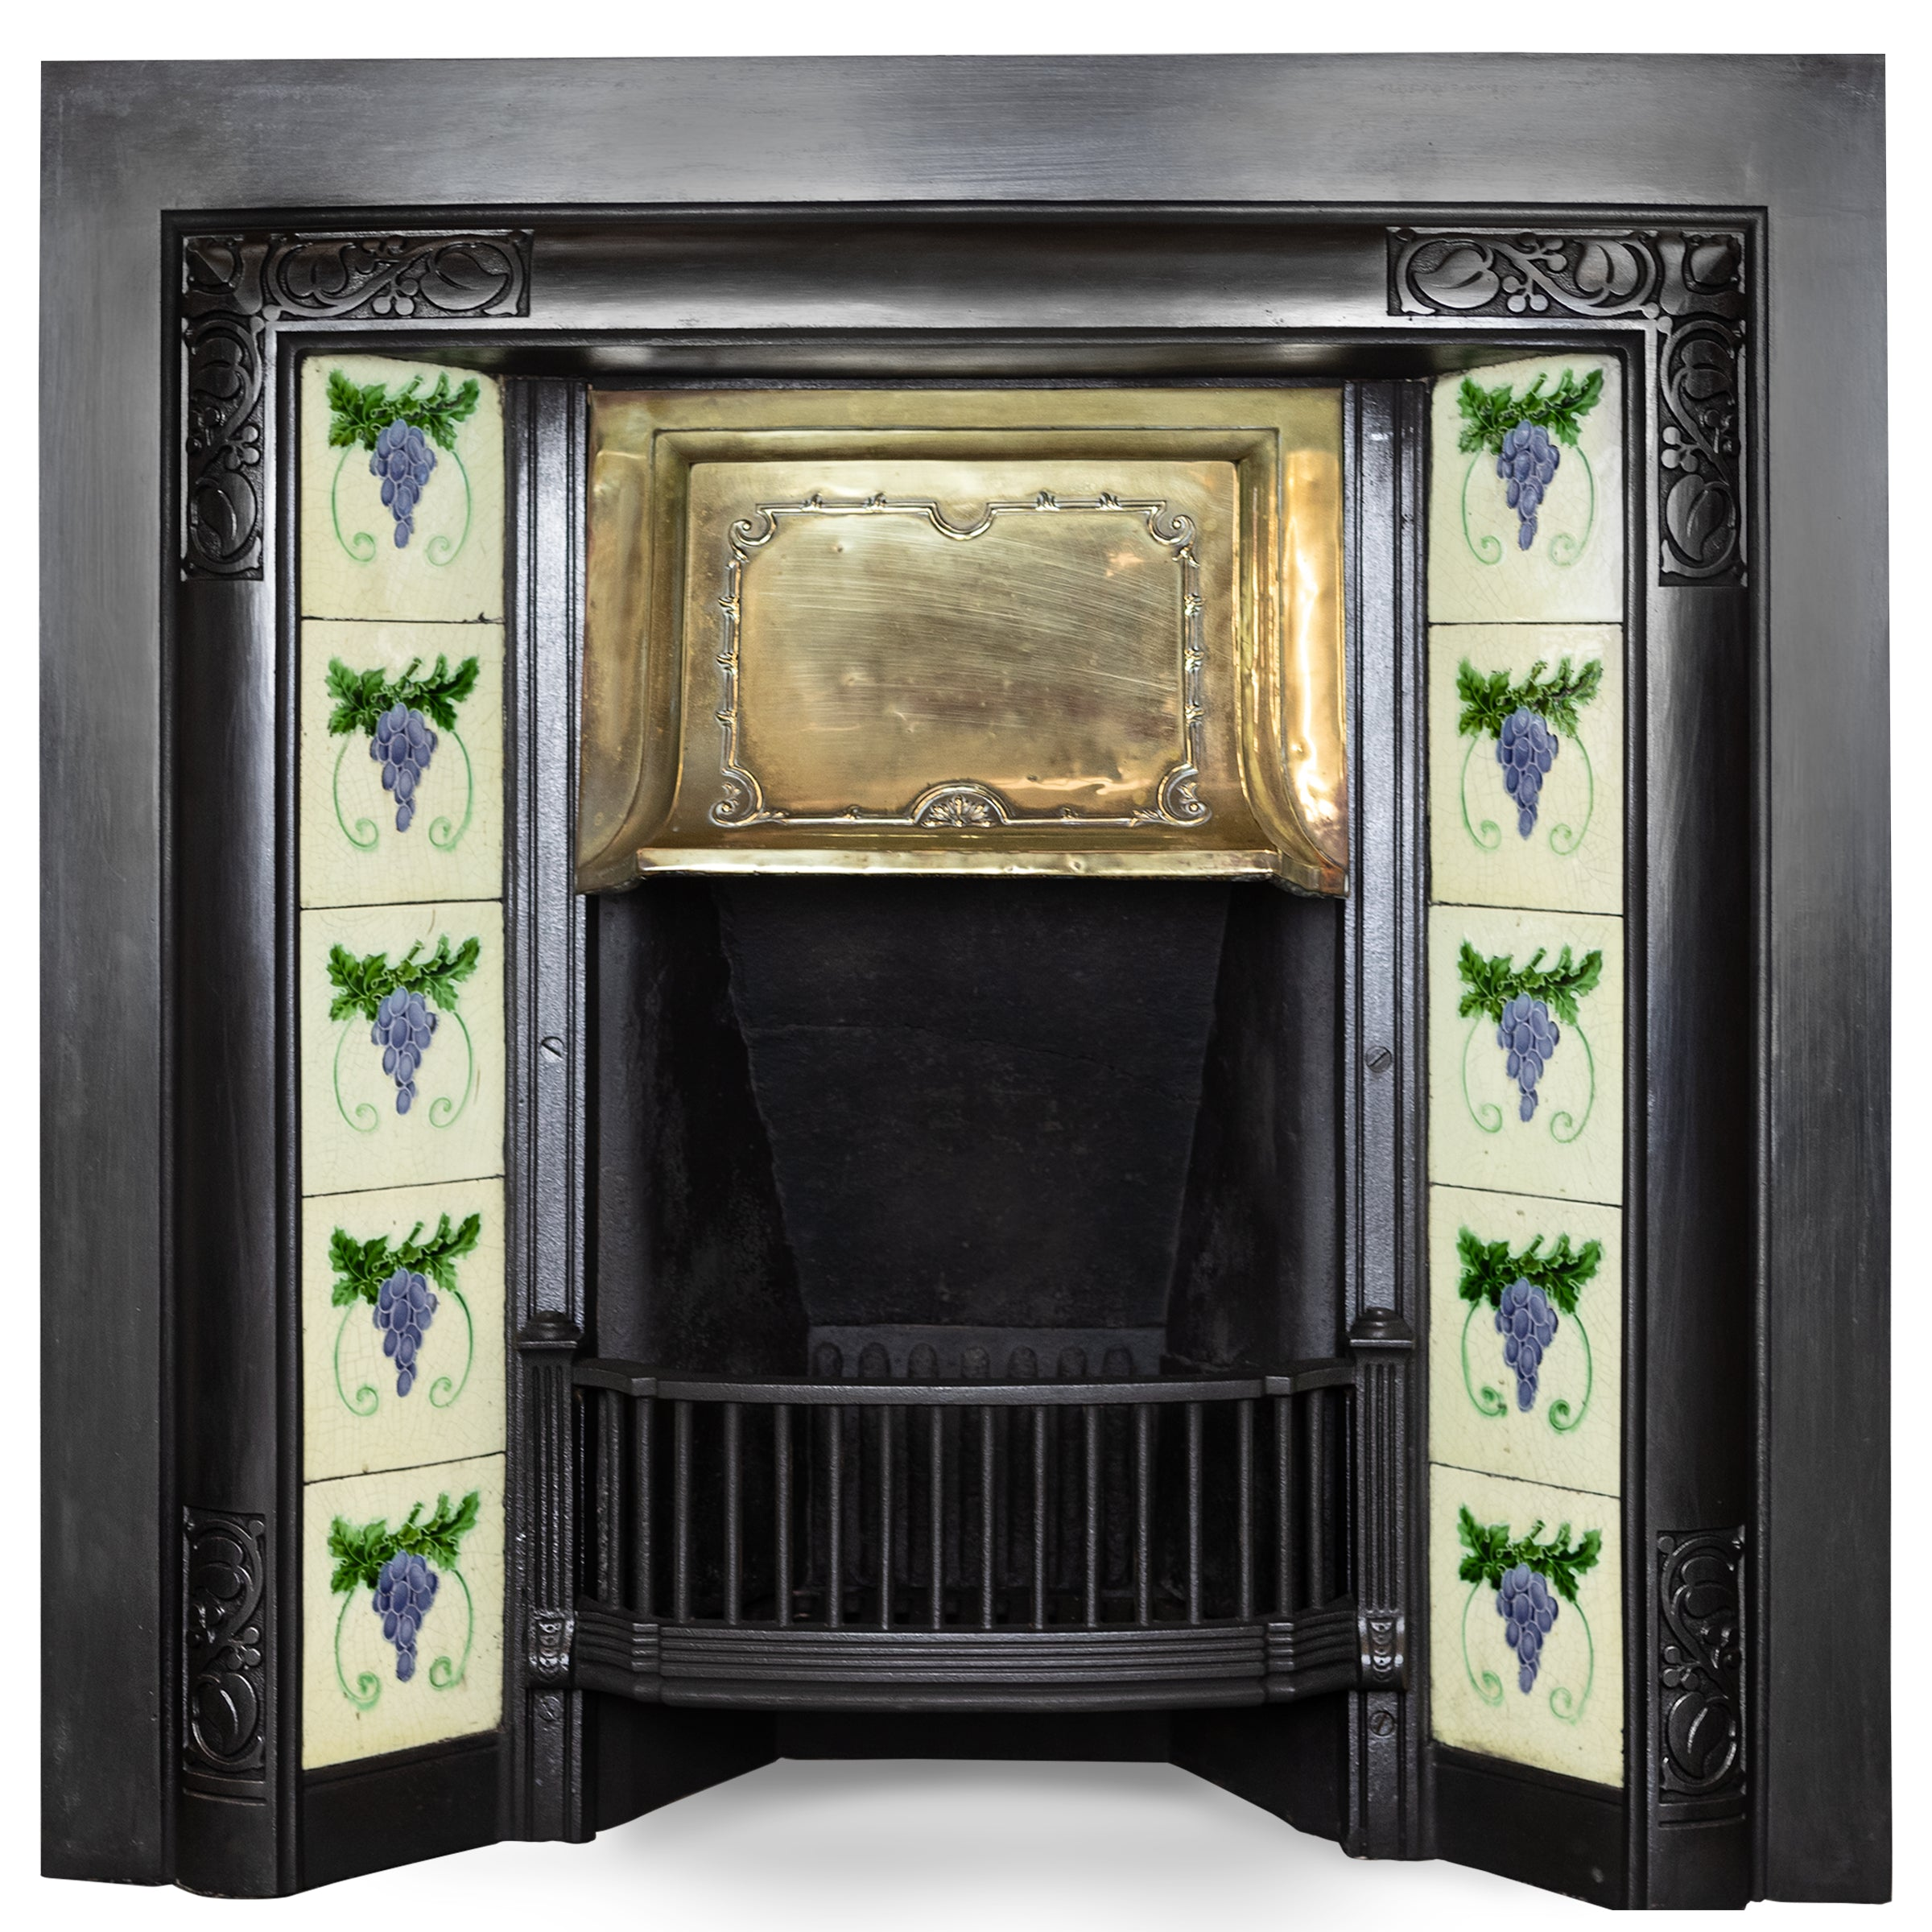 Antique Fireplace Tiled with Tiles and Brass Hood